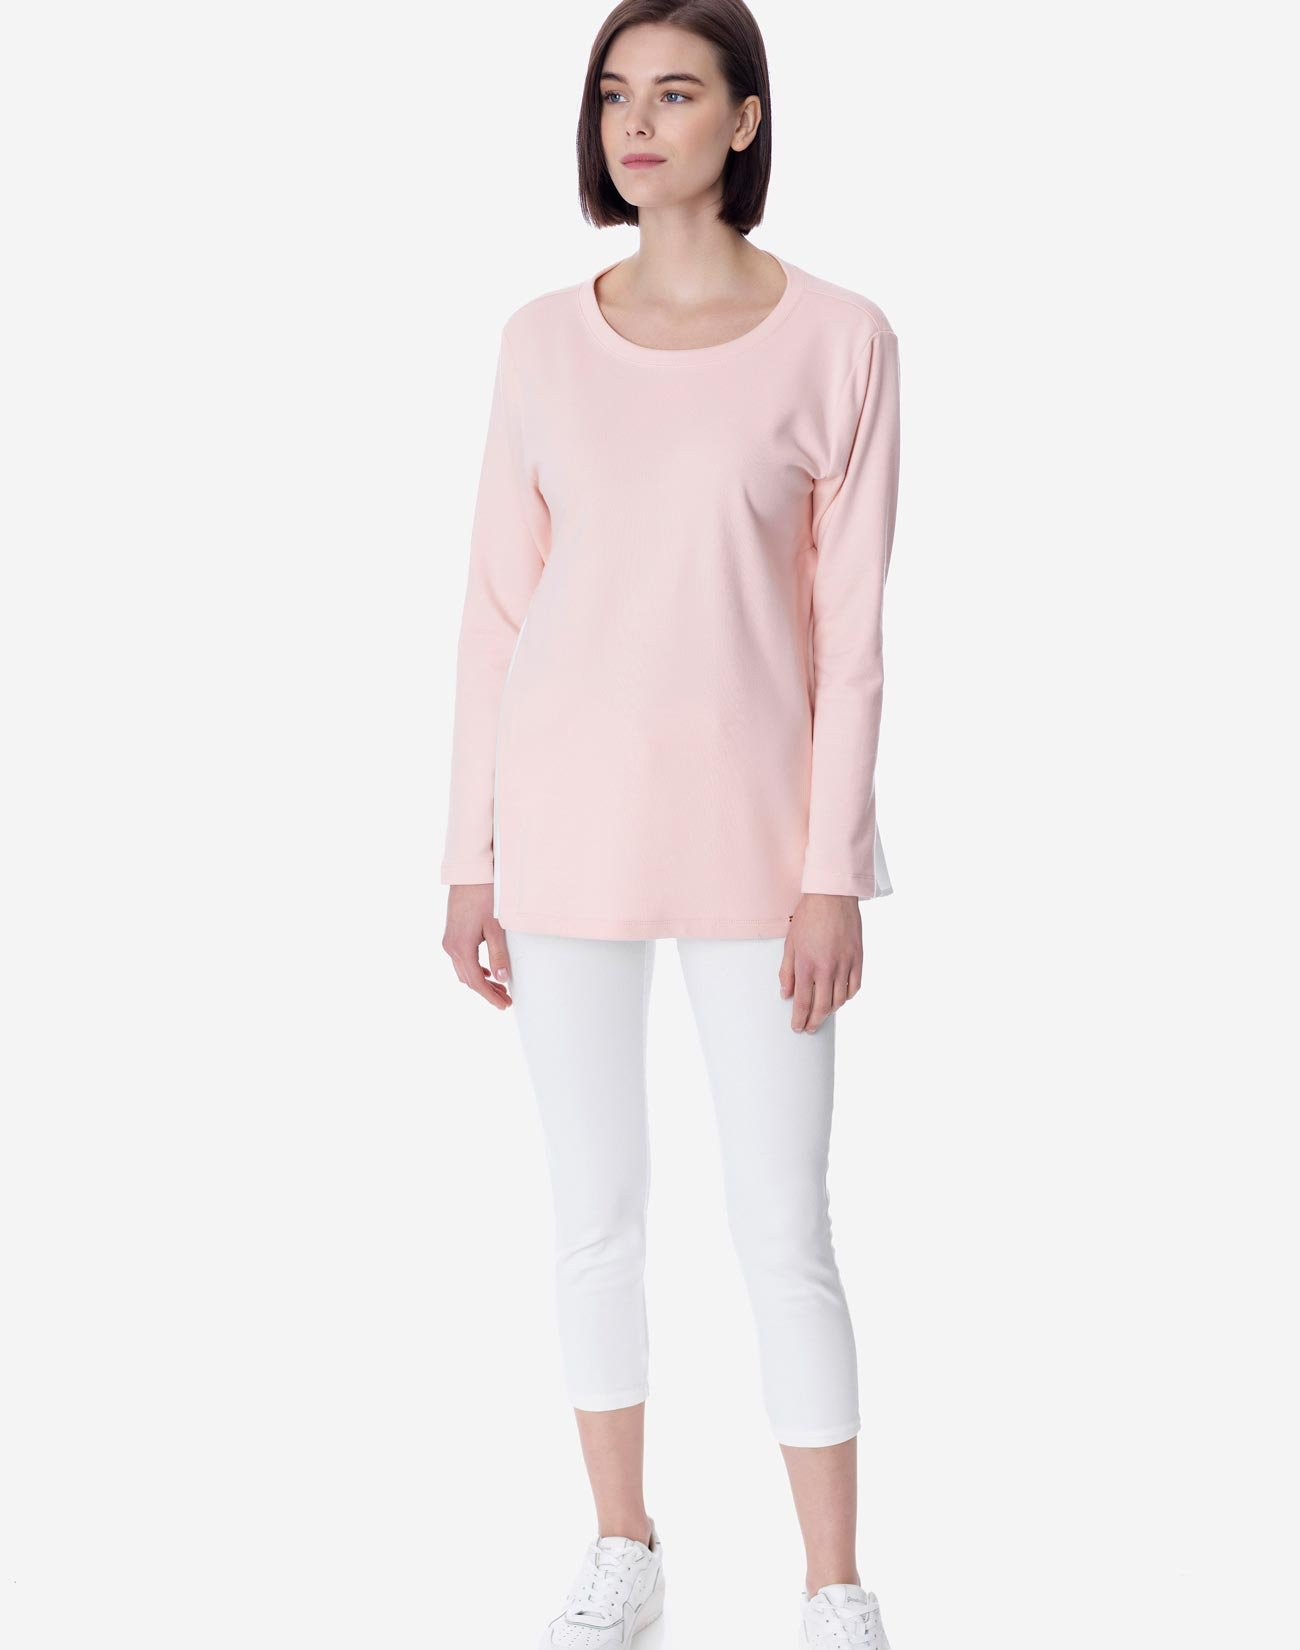 Contrast sweatshirt with bow